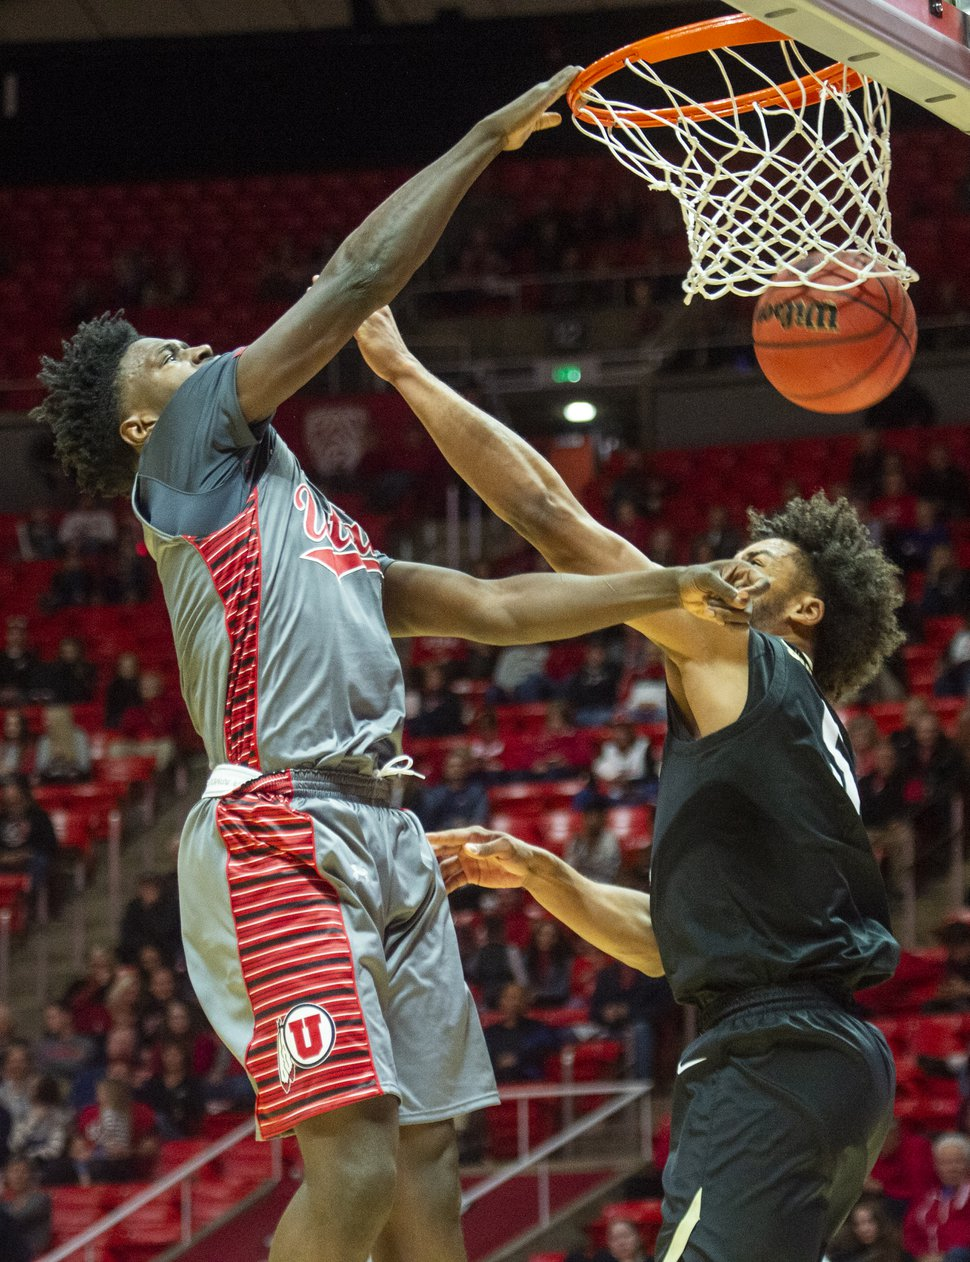 (Rick Egan | The Salt Lake Tribune) Utah Utes forward Donnie Tillman (3) dunks the ball over Colorado Buffaloes guard D'Shawn Schwartz (5), in PAC-12 basketball action between the Utah Utes and the Colorado Buffaloes at the Jon M. Huntsman Center, Sunday, Jan. 20, 2019.